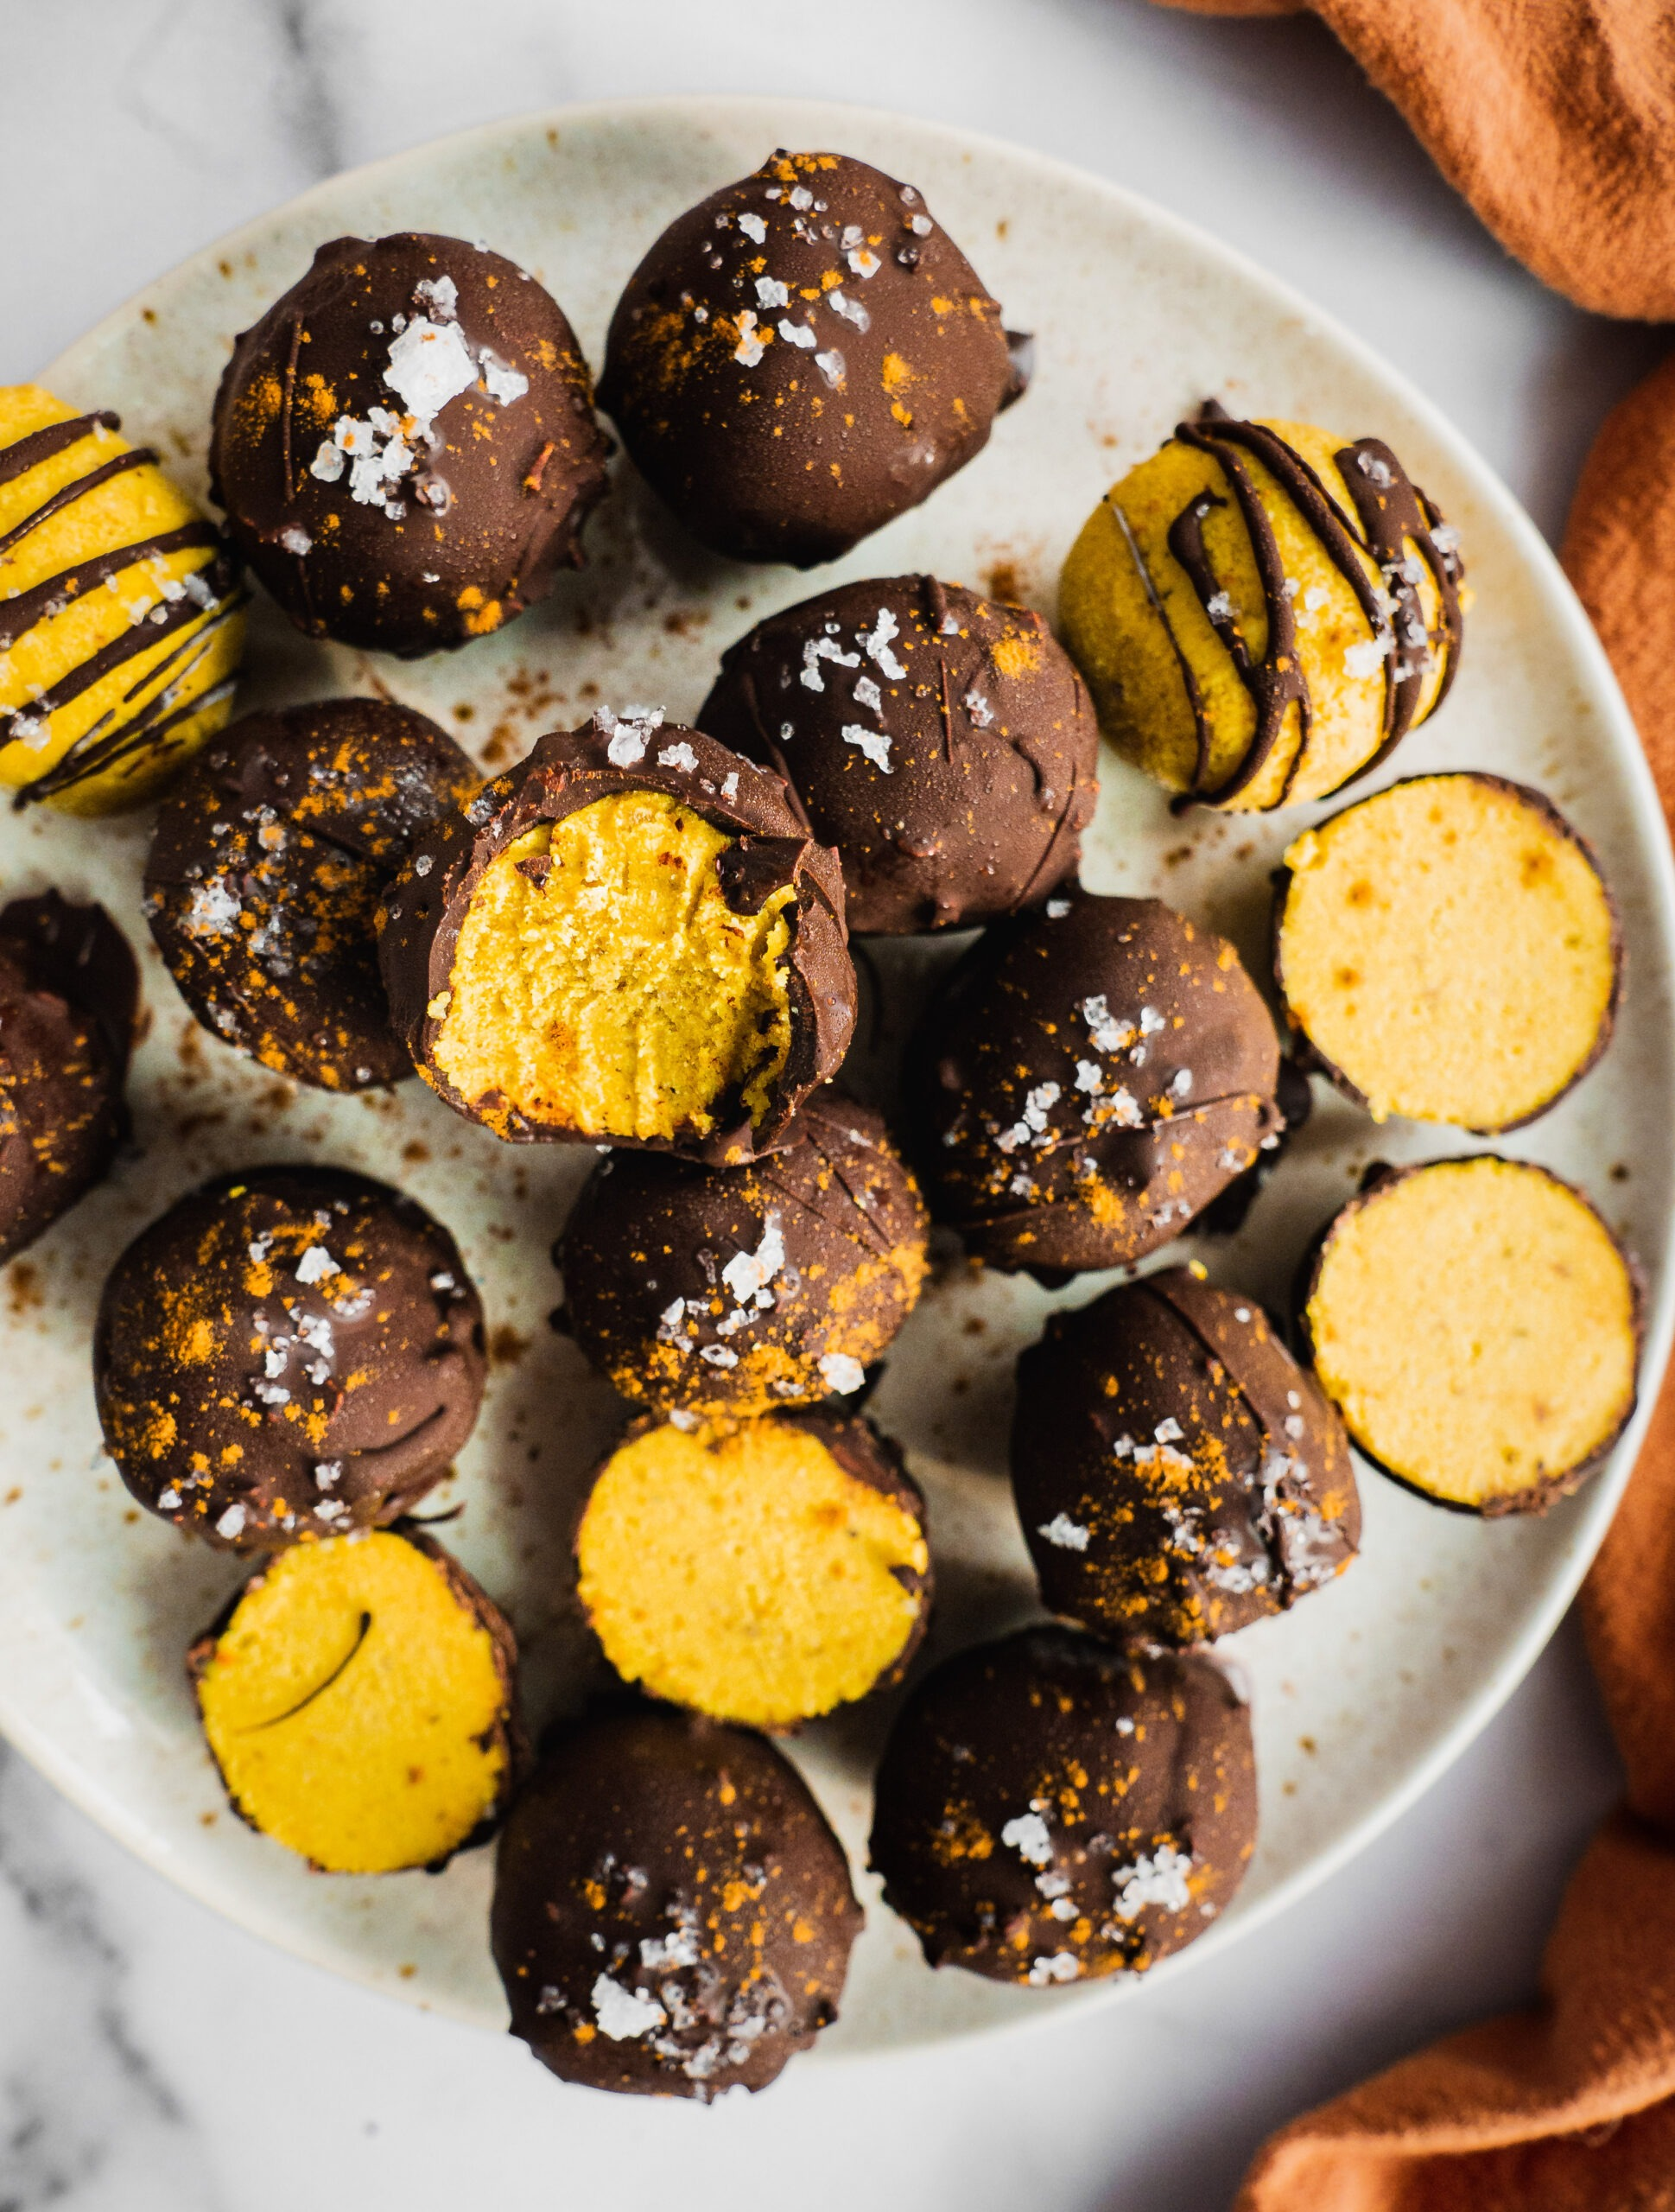 a plate with colorful energy balls made gluten-free, keto, paleo and vegan